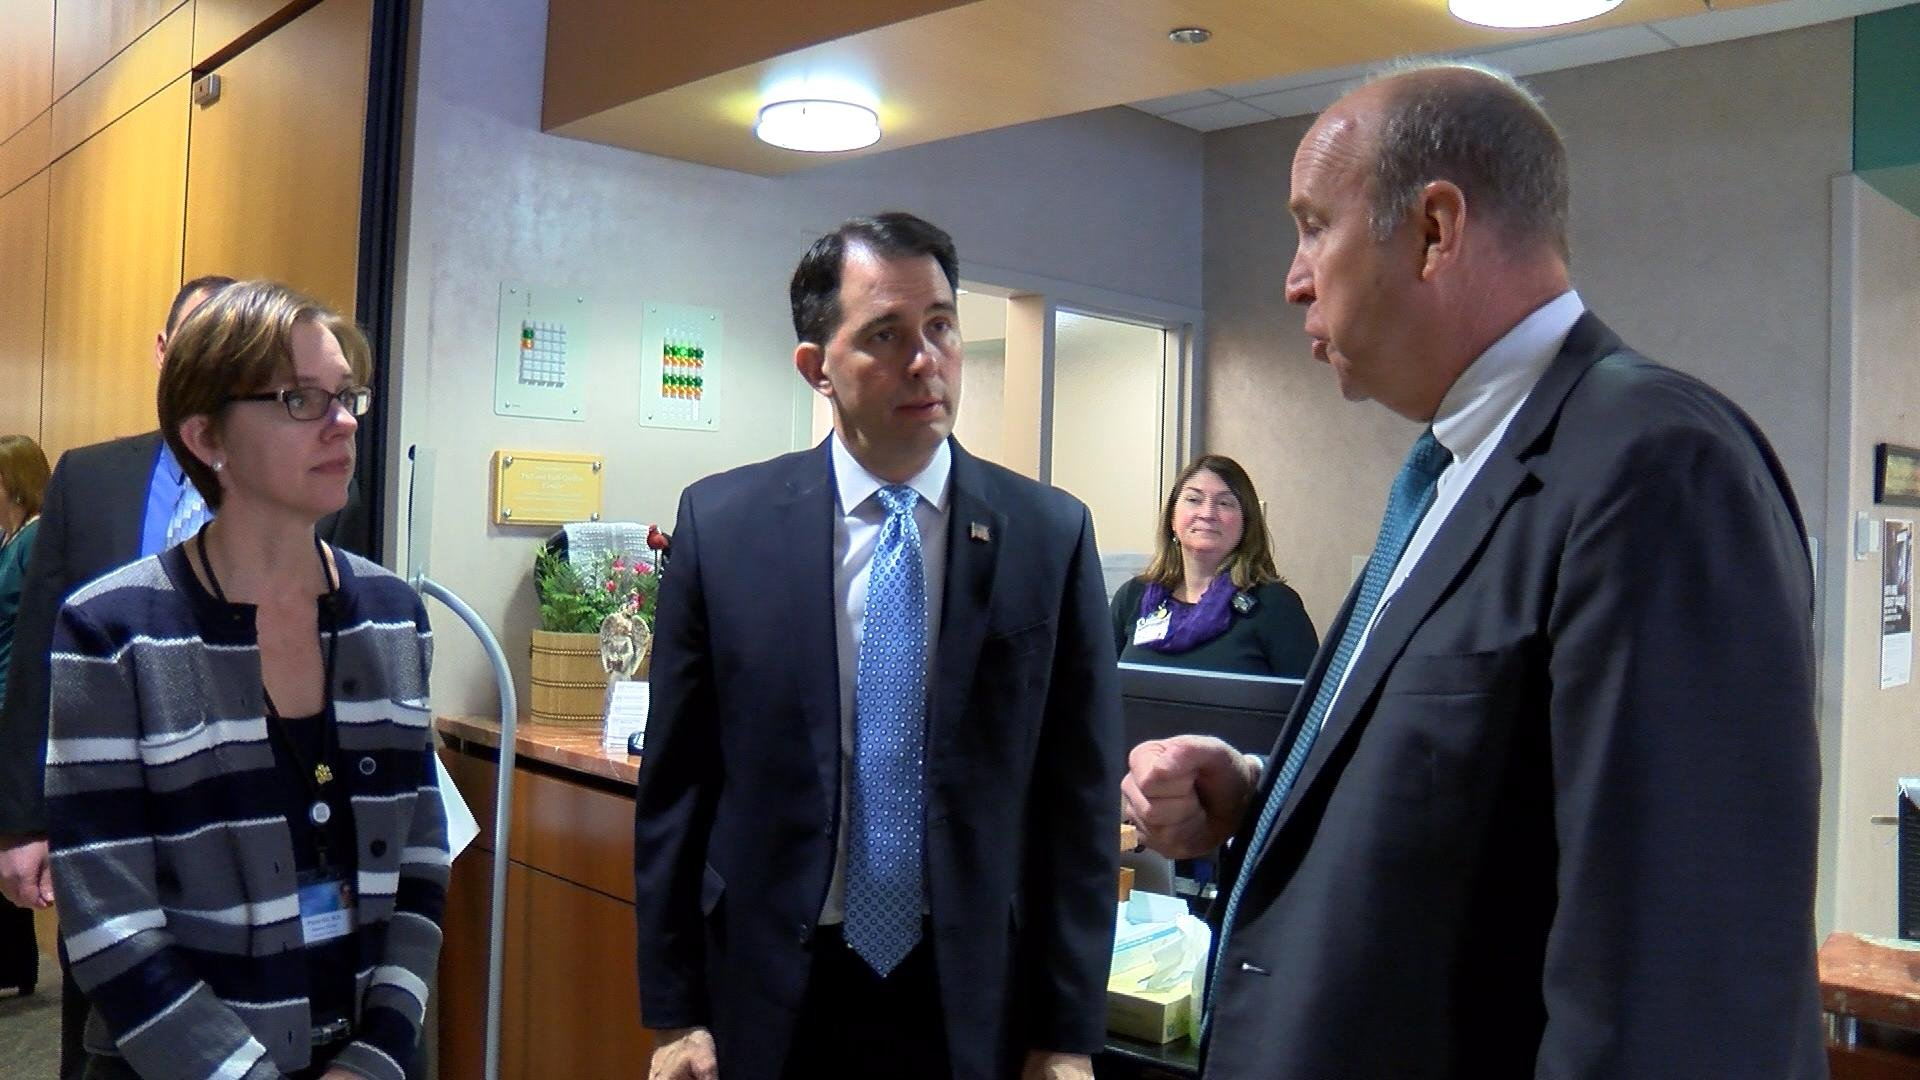 Governor Scott Walker gets a tour of the Mayo Clinic in La Crosse.